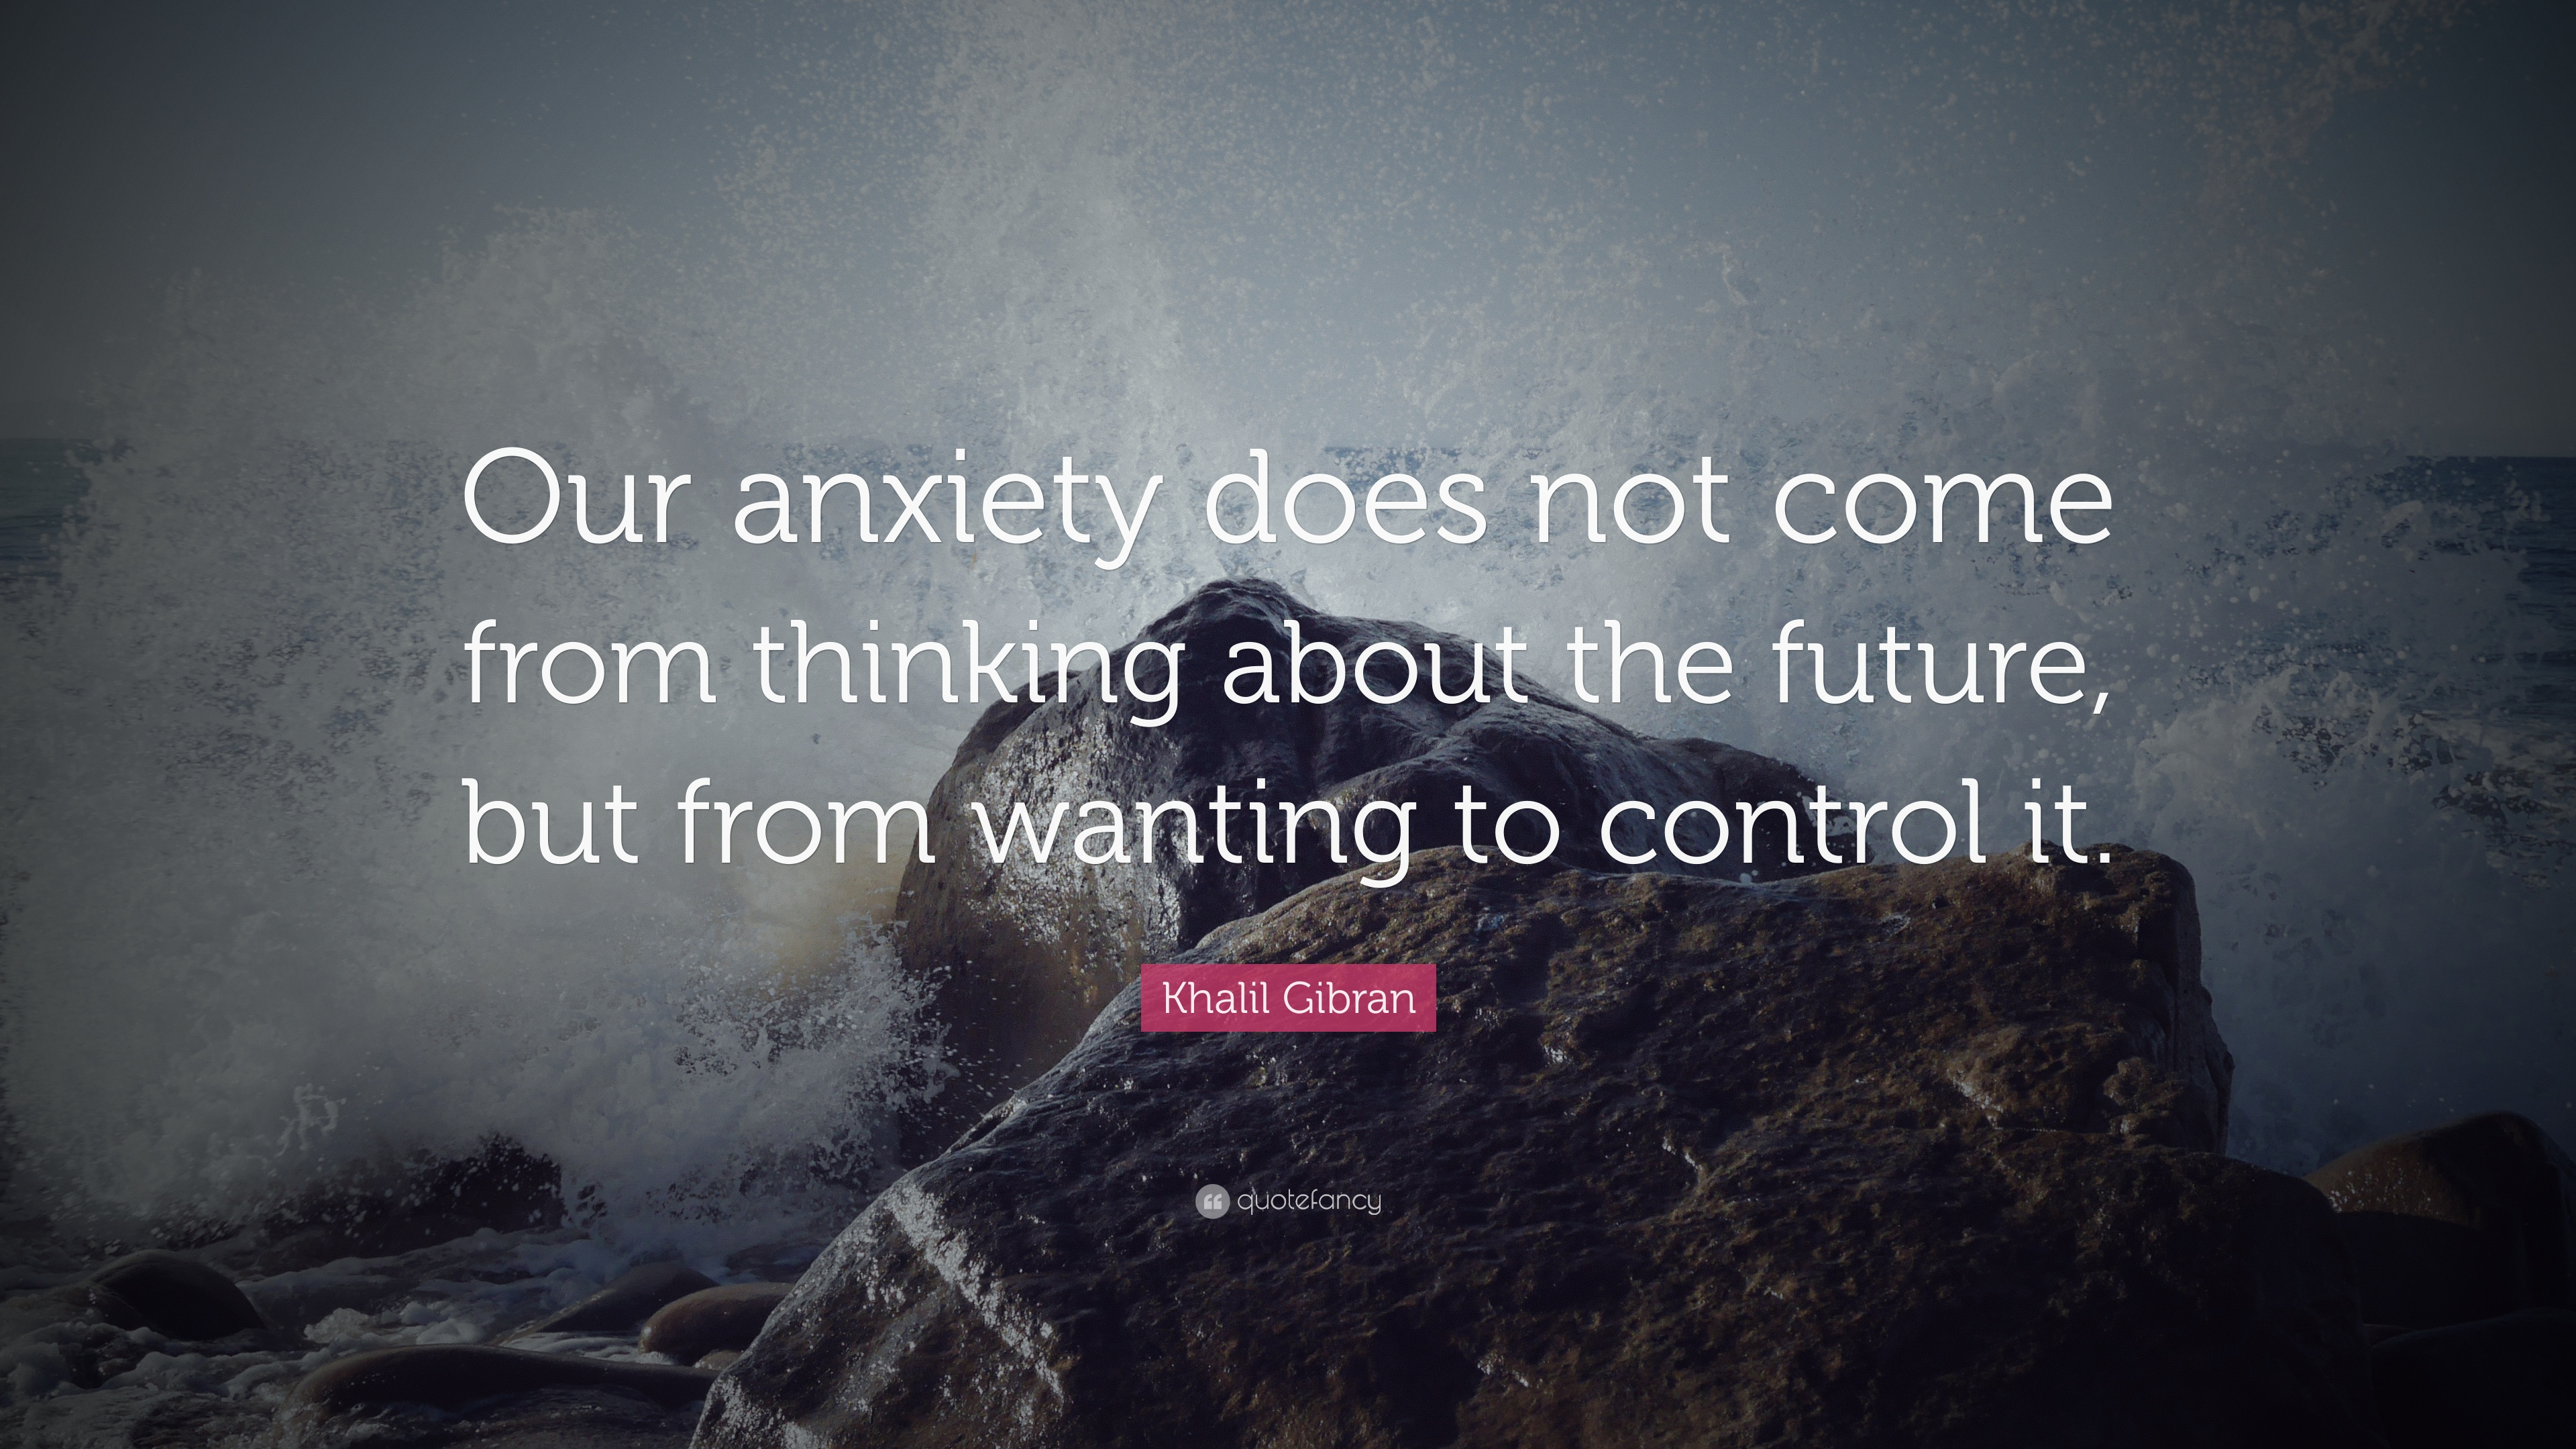 Quotes 300 Anxiety Quotes 40 Wallpapers  Quotefancy